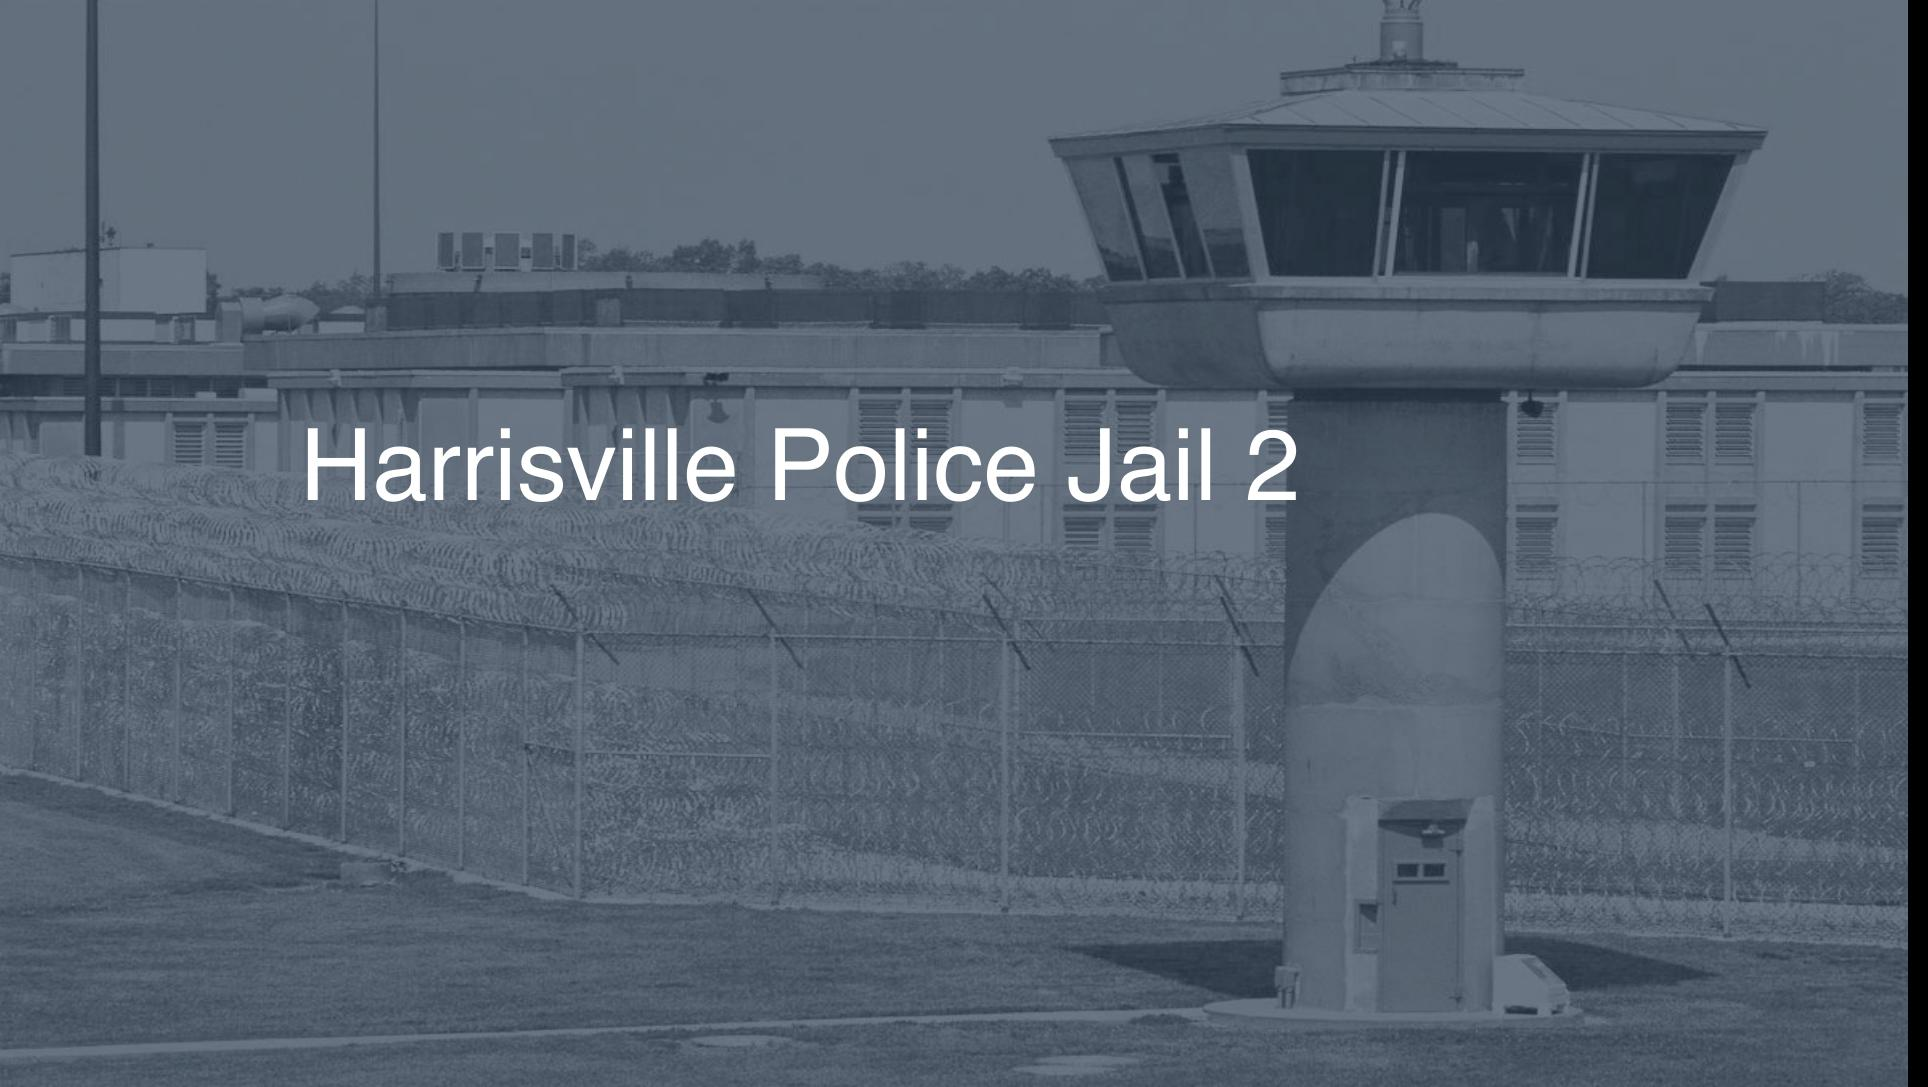 Harrisville Police Jail correctional facility picture